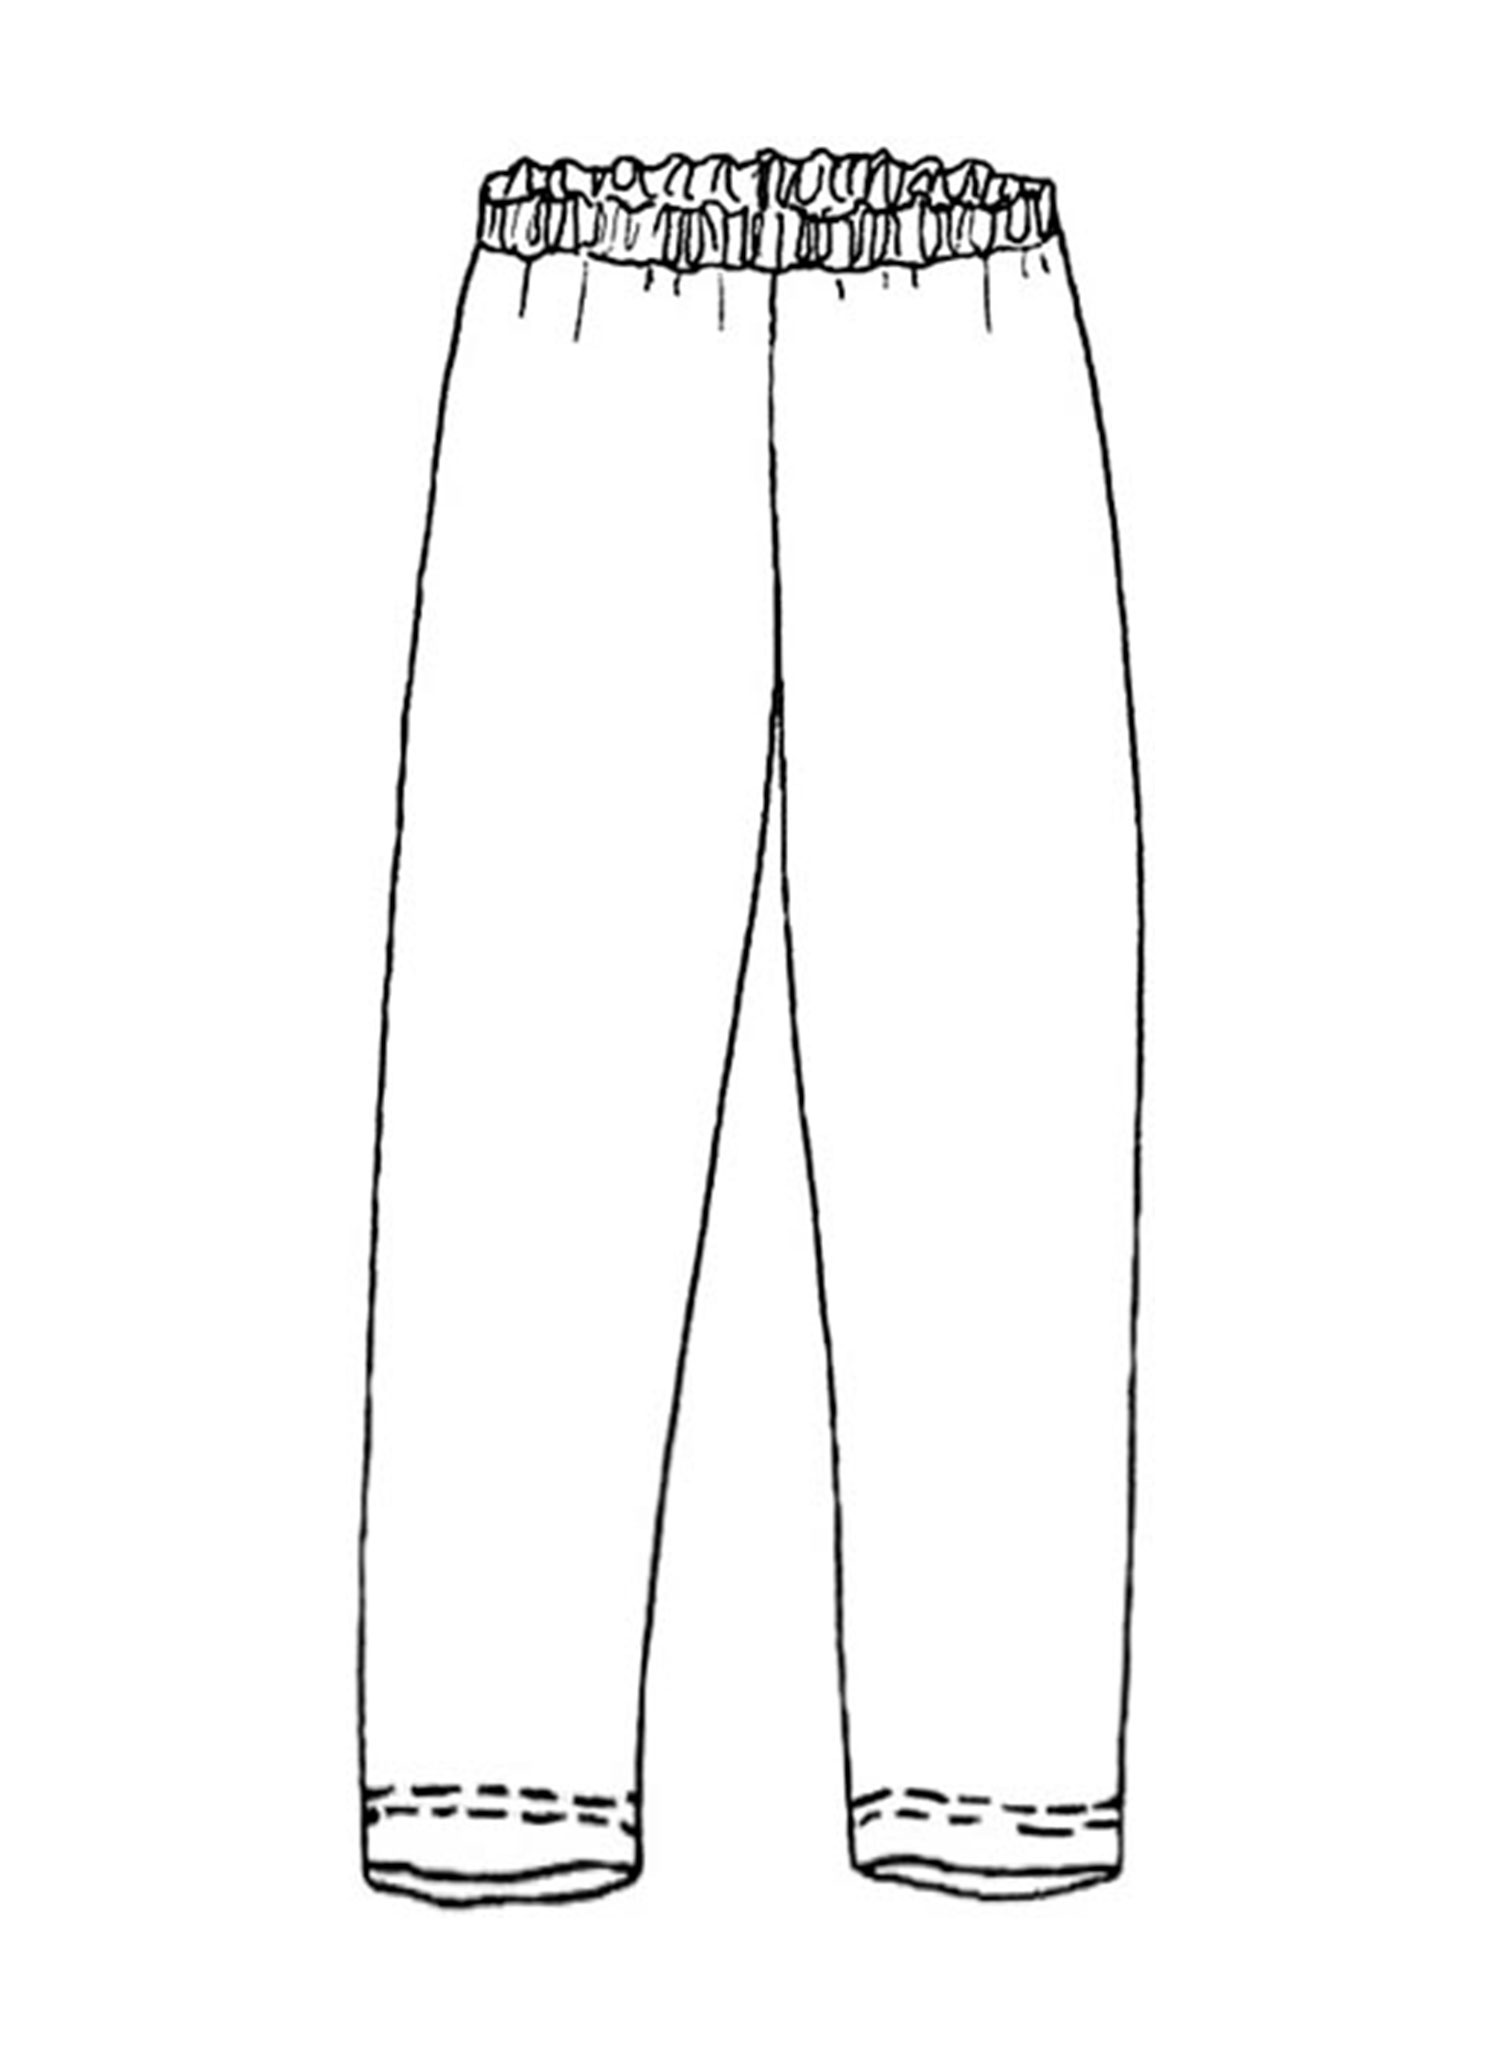 Ankle Length Leggings sketch image